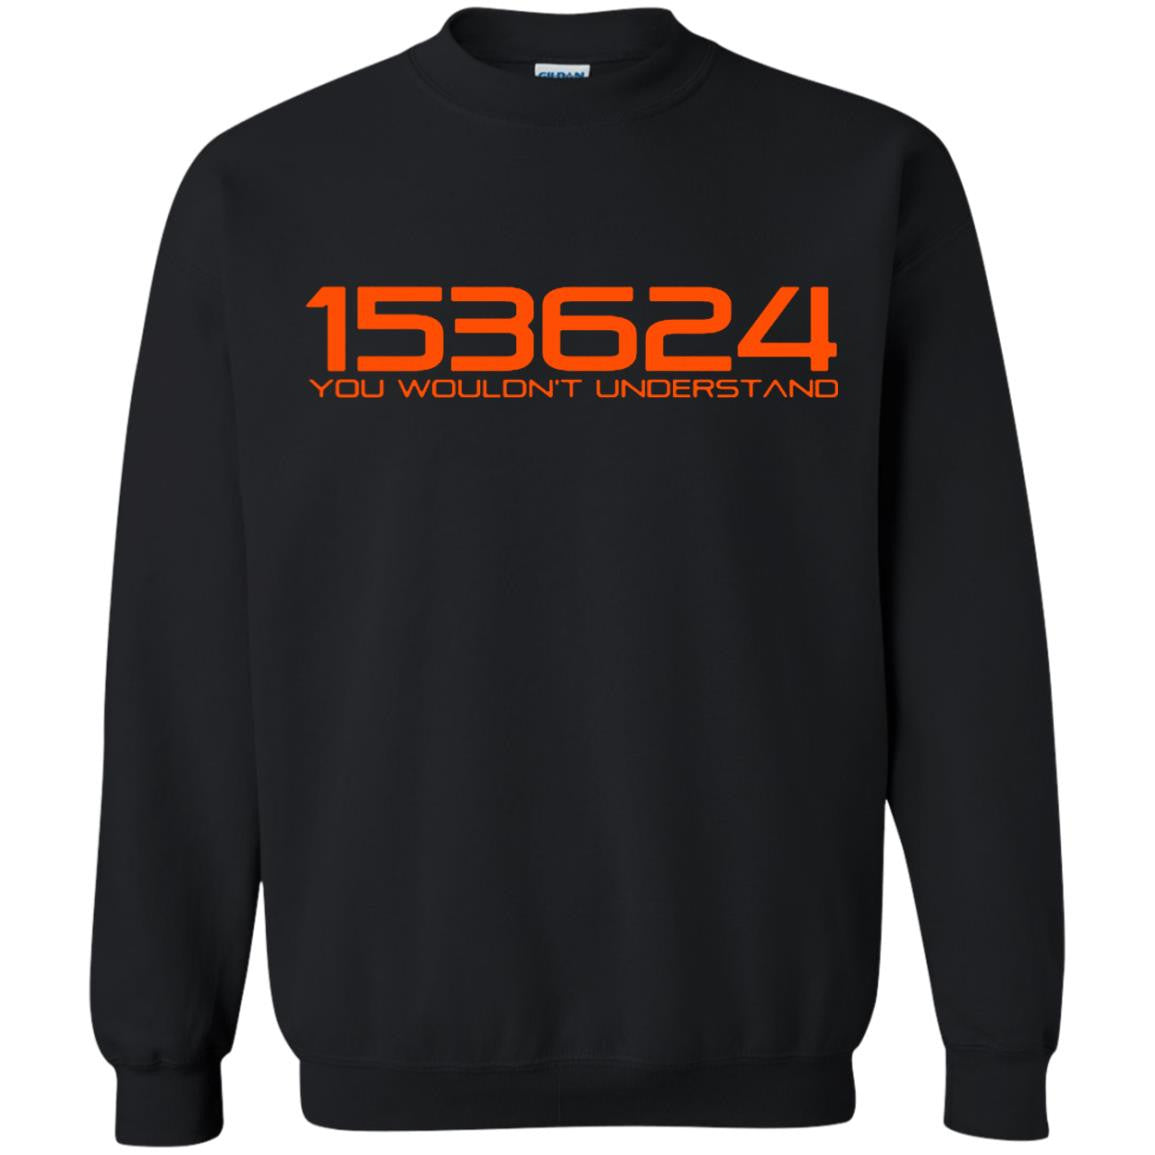 153624 T-shirts You Wouldn't Understand Hoodies Sweatshirts